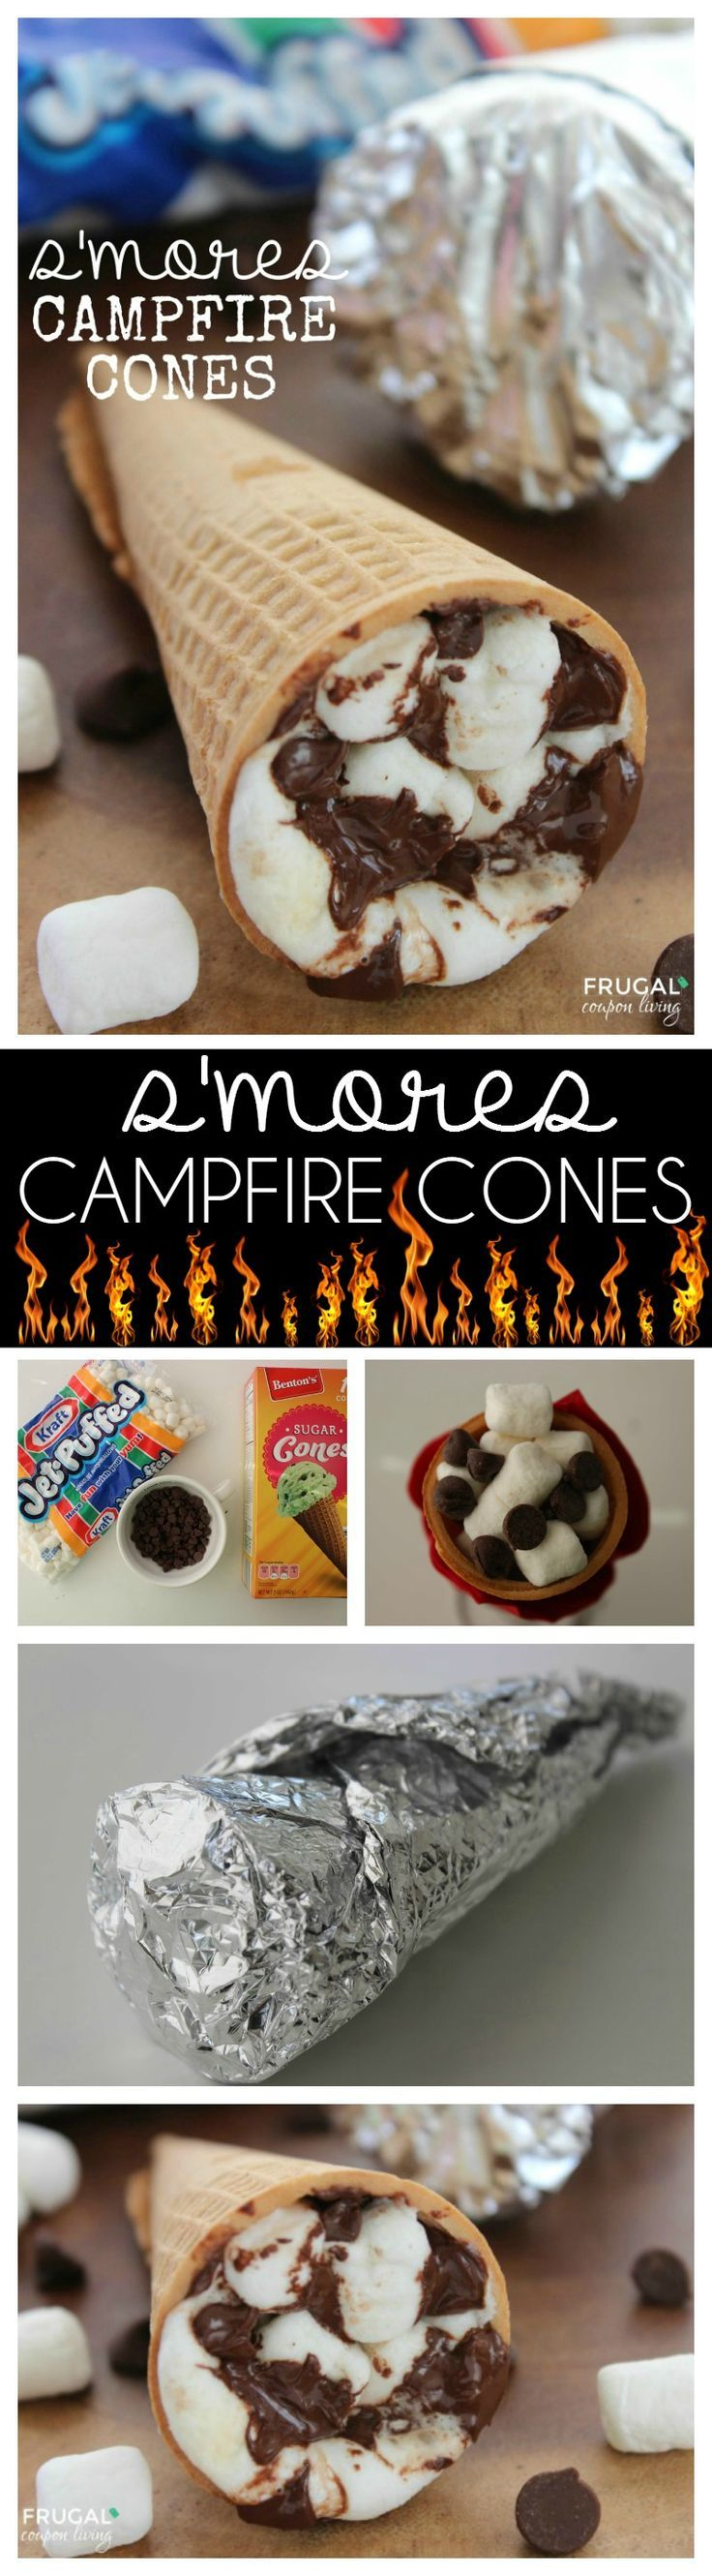 S'mores Campfire Cones - this campfire recipe goes outside the box and creates the ultimate smores recipe for adults and kids